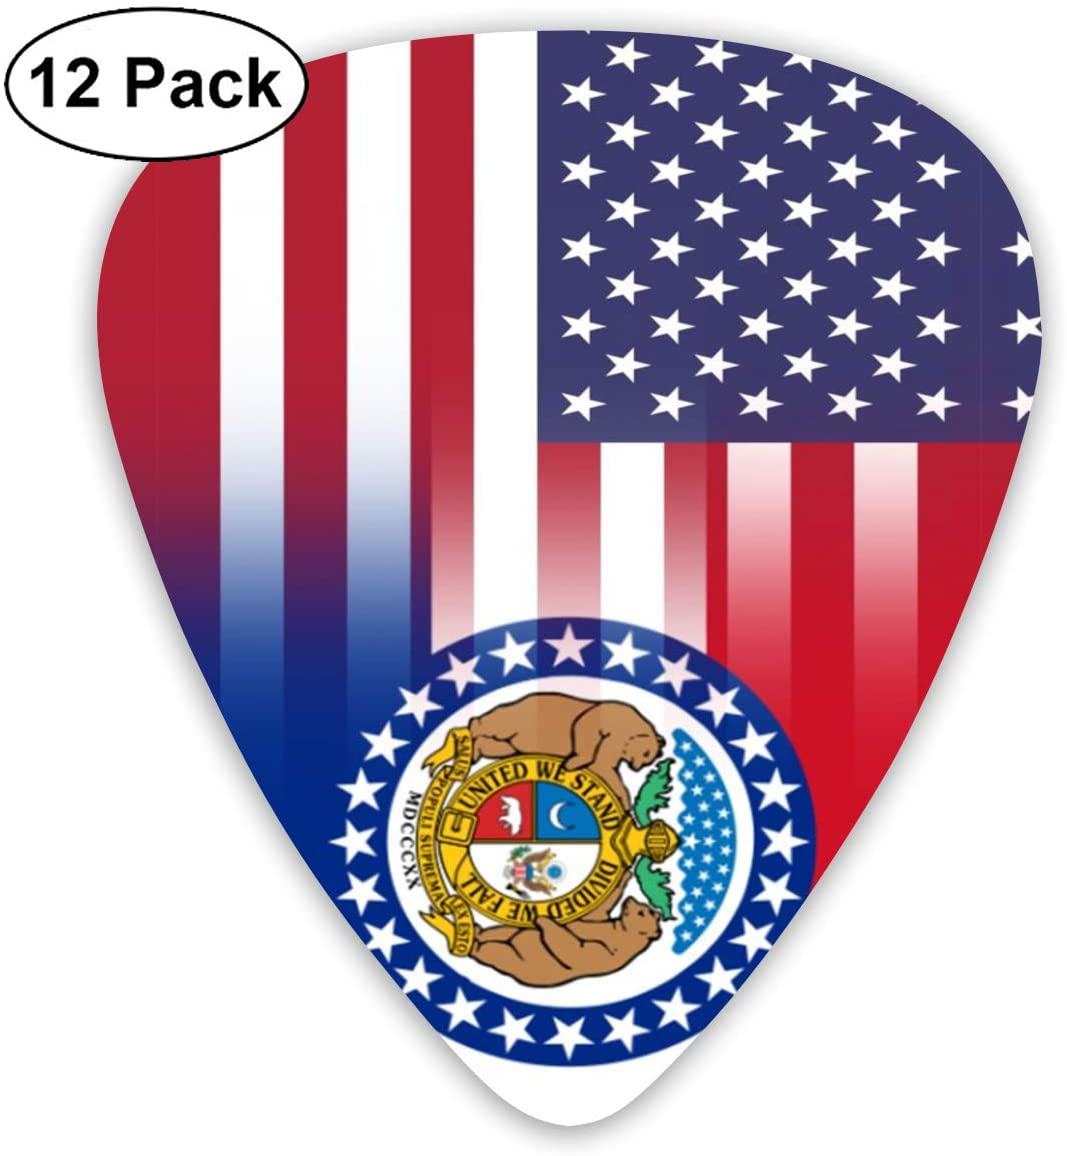 XKAWPC American Missouri State Flag Personalized Guitar Picks 12pcs,Unique Guitar Gift for Your Electric, Acoustic, Or Bass Guitar Includes 0.46, 0.71, 0.96mm